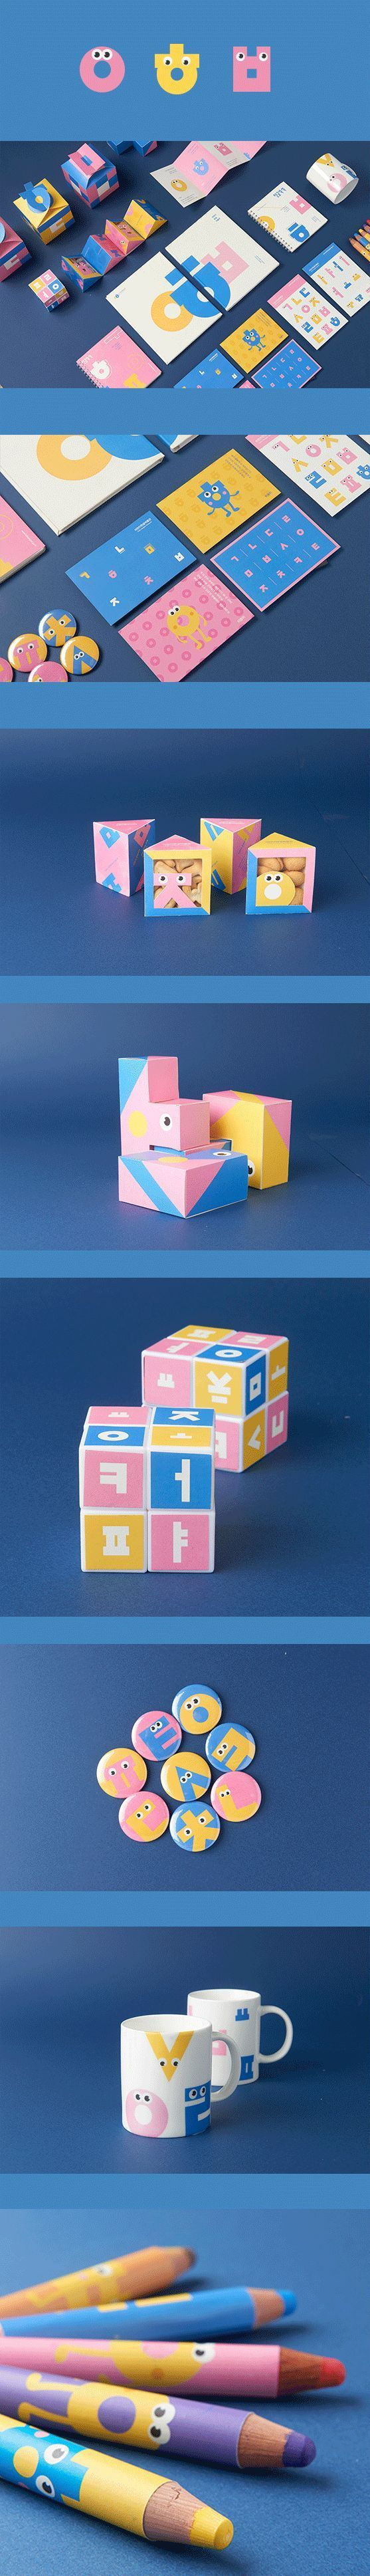 Kid Hangeul Museum Branding by JJungJi | The way the colors, patterns and shapes interact with each other